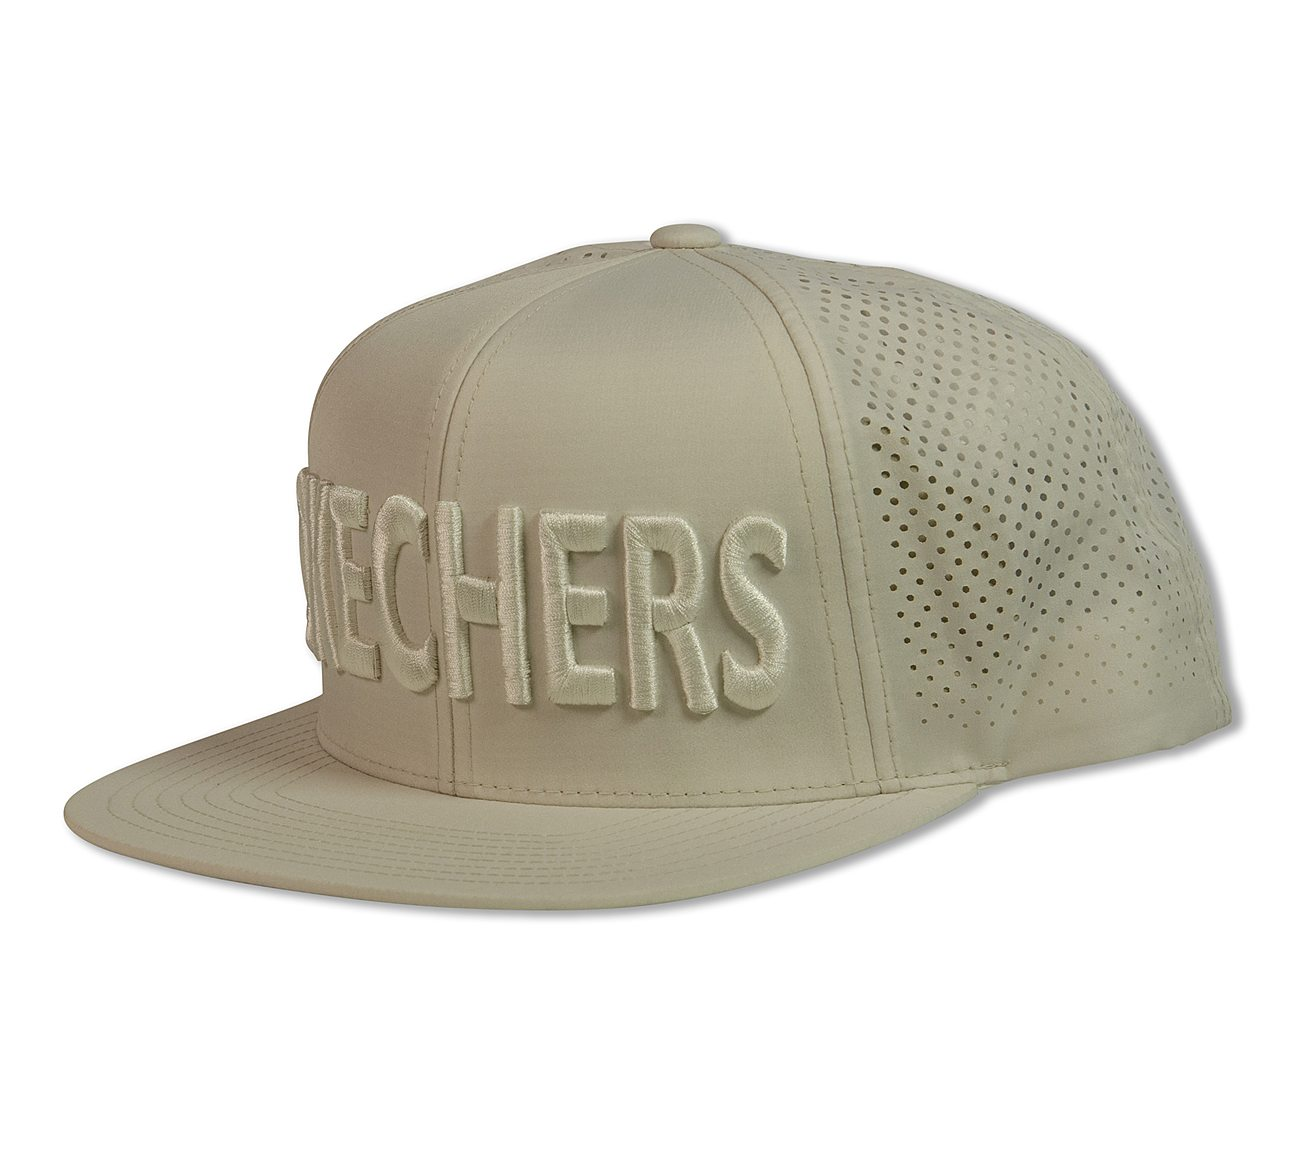 Buy SKECHERS Empire Snapback Hat Accessories Shoes only  28.00 df37608a214